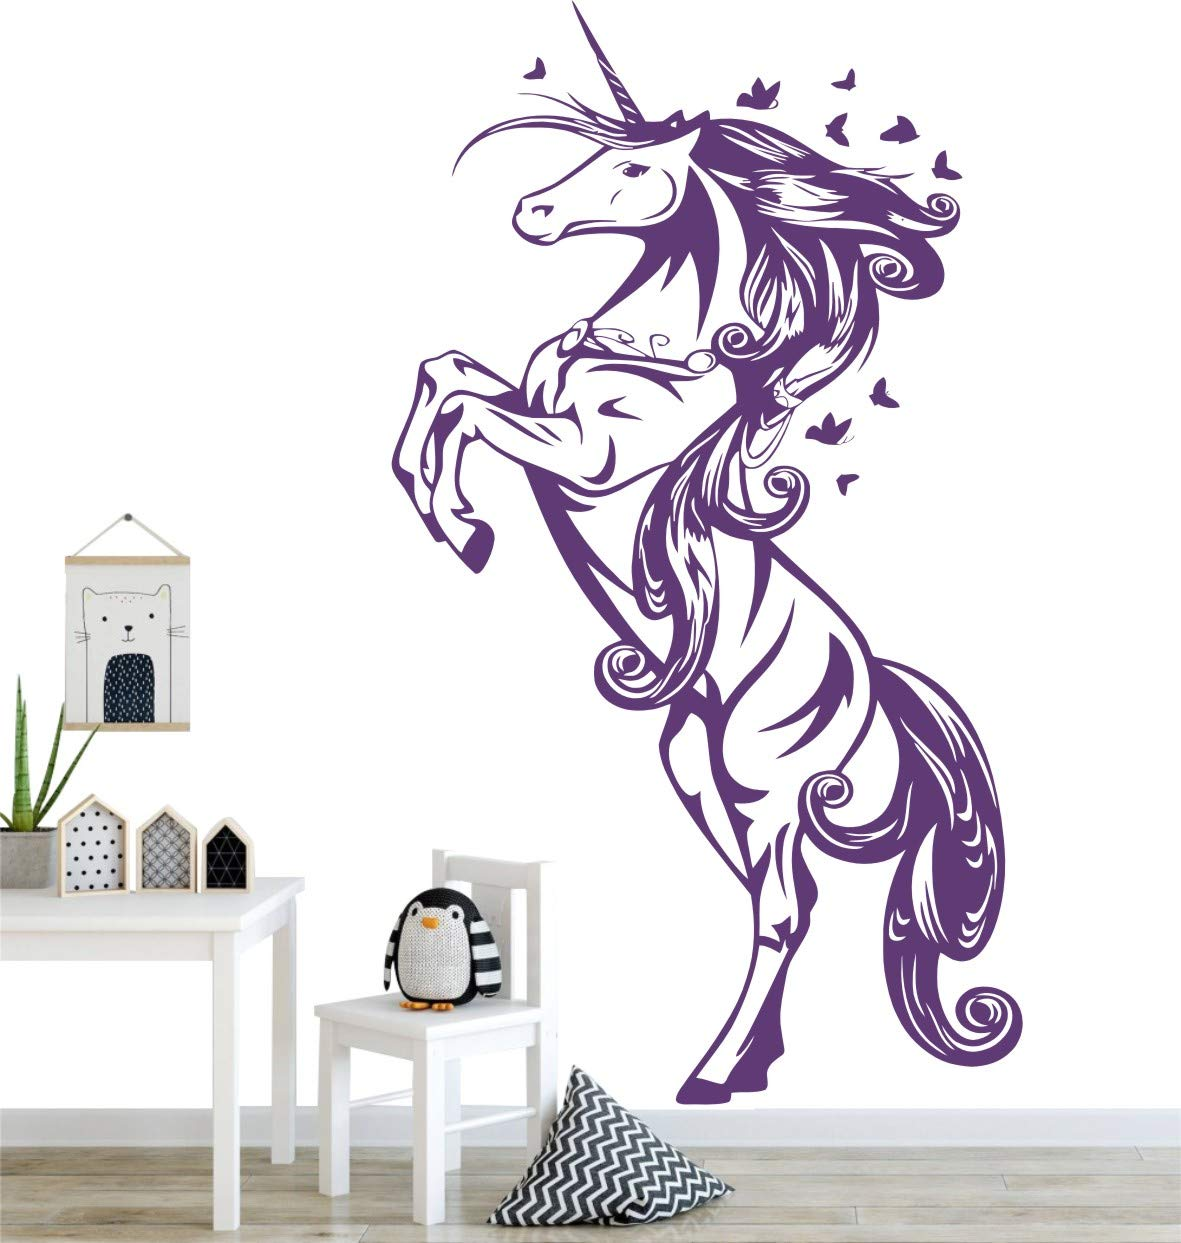 Beautiful Stand Unicorn Wall Decal,Art Removable Kids Nursery Bedroom Butterflies Unicorn Horse Wall Sticker,Baby Room Decoration Home Decor Wall Decor ES-43 (Violet, 55X97CM) YOYOYU